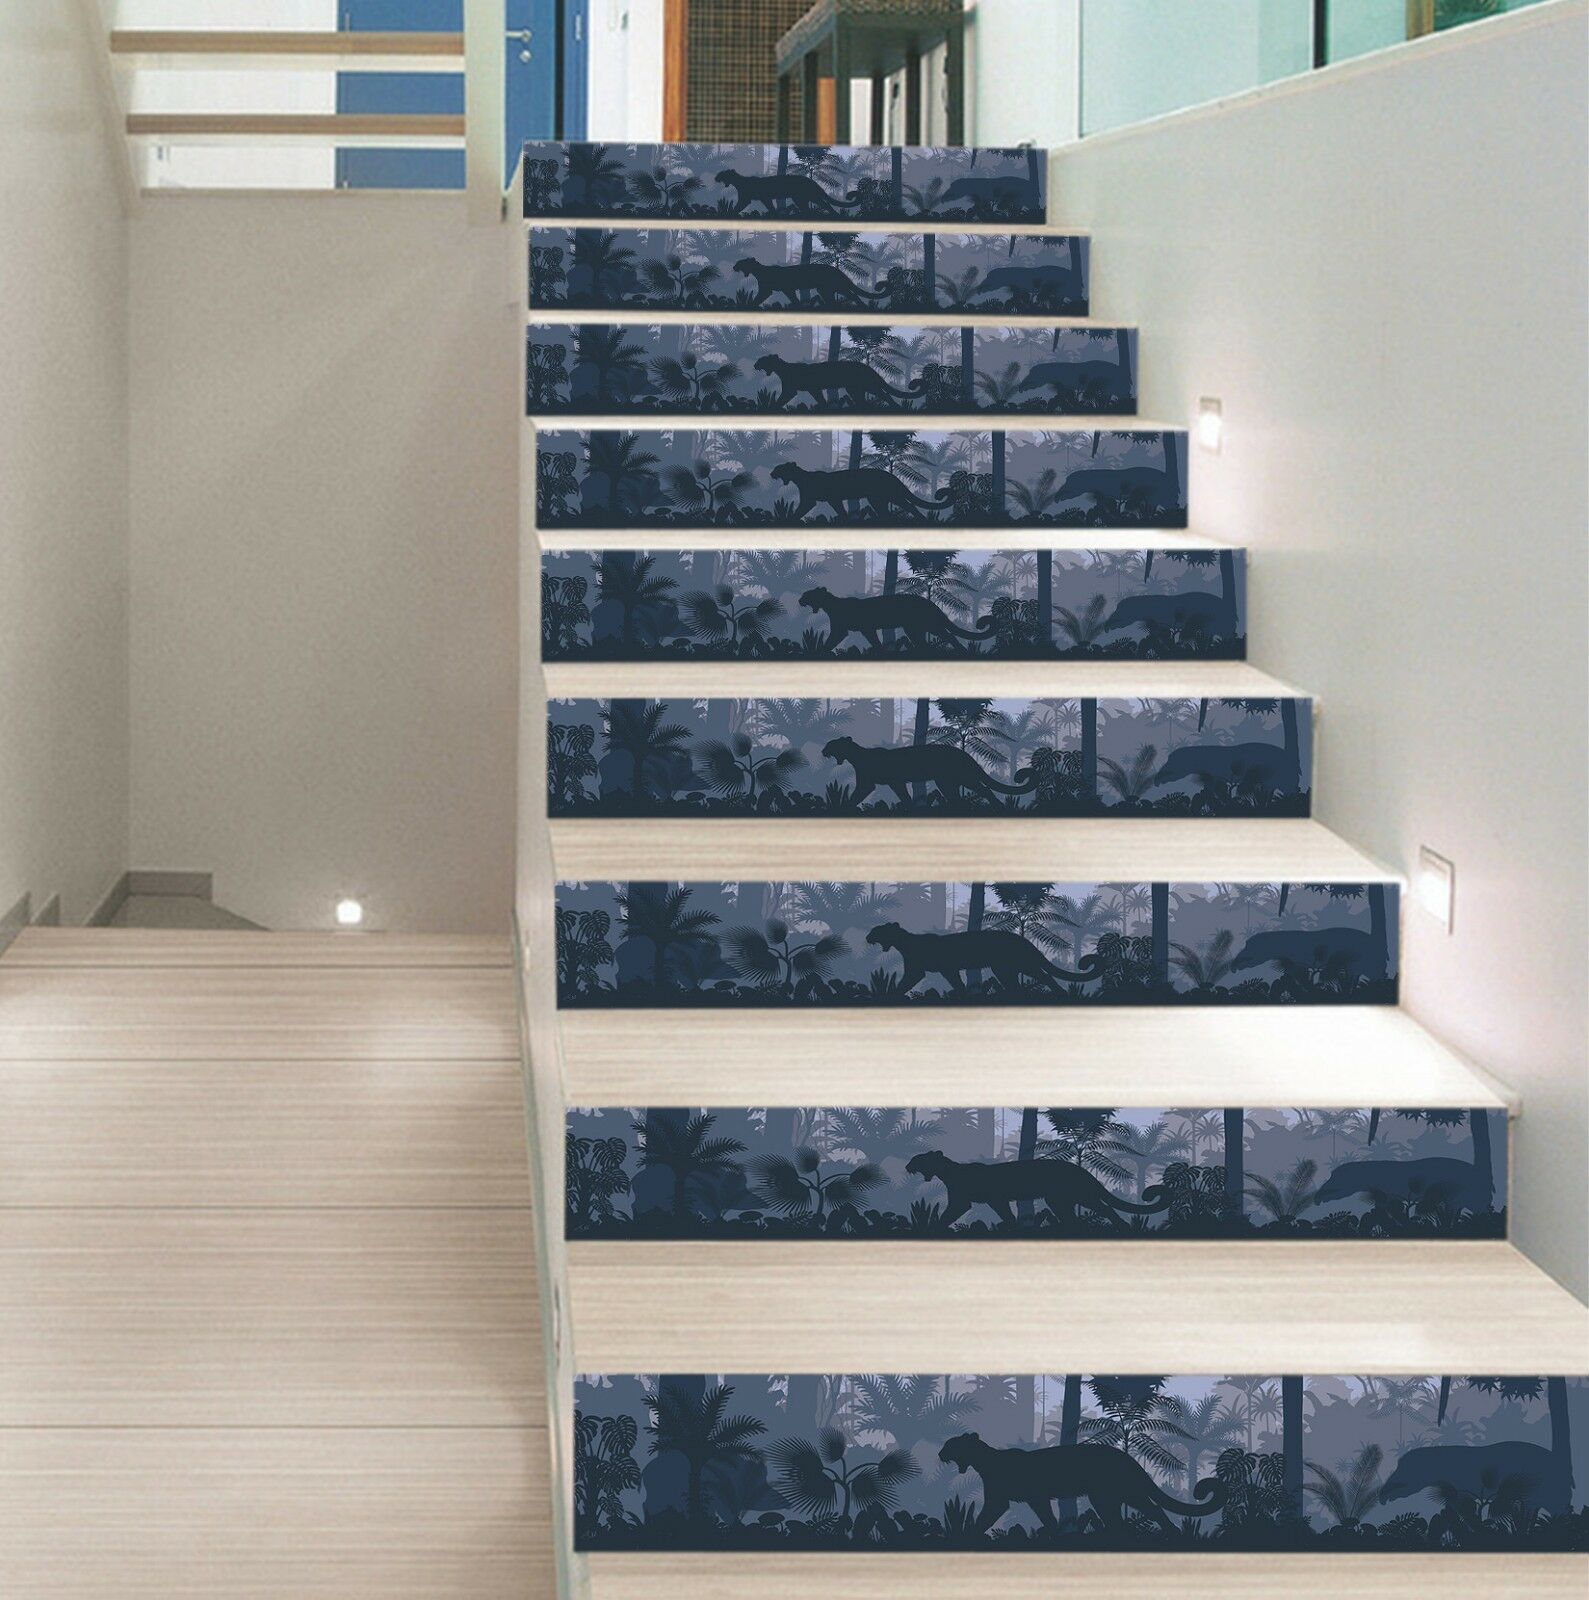 3D Woods Leopard 4 Tile Marble Stair Riser Photo Mural Vinyl MXY Wallpaper